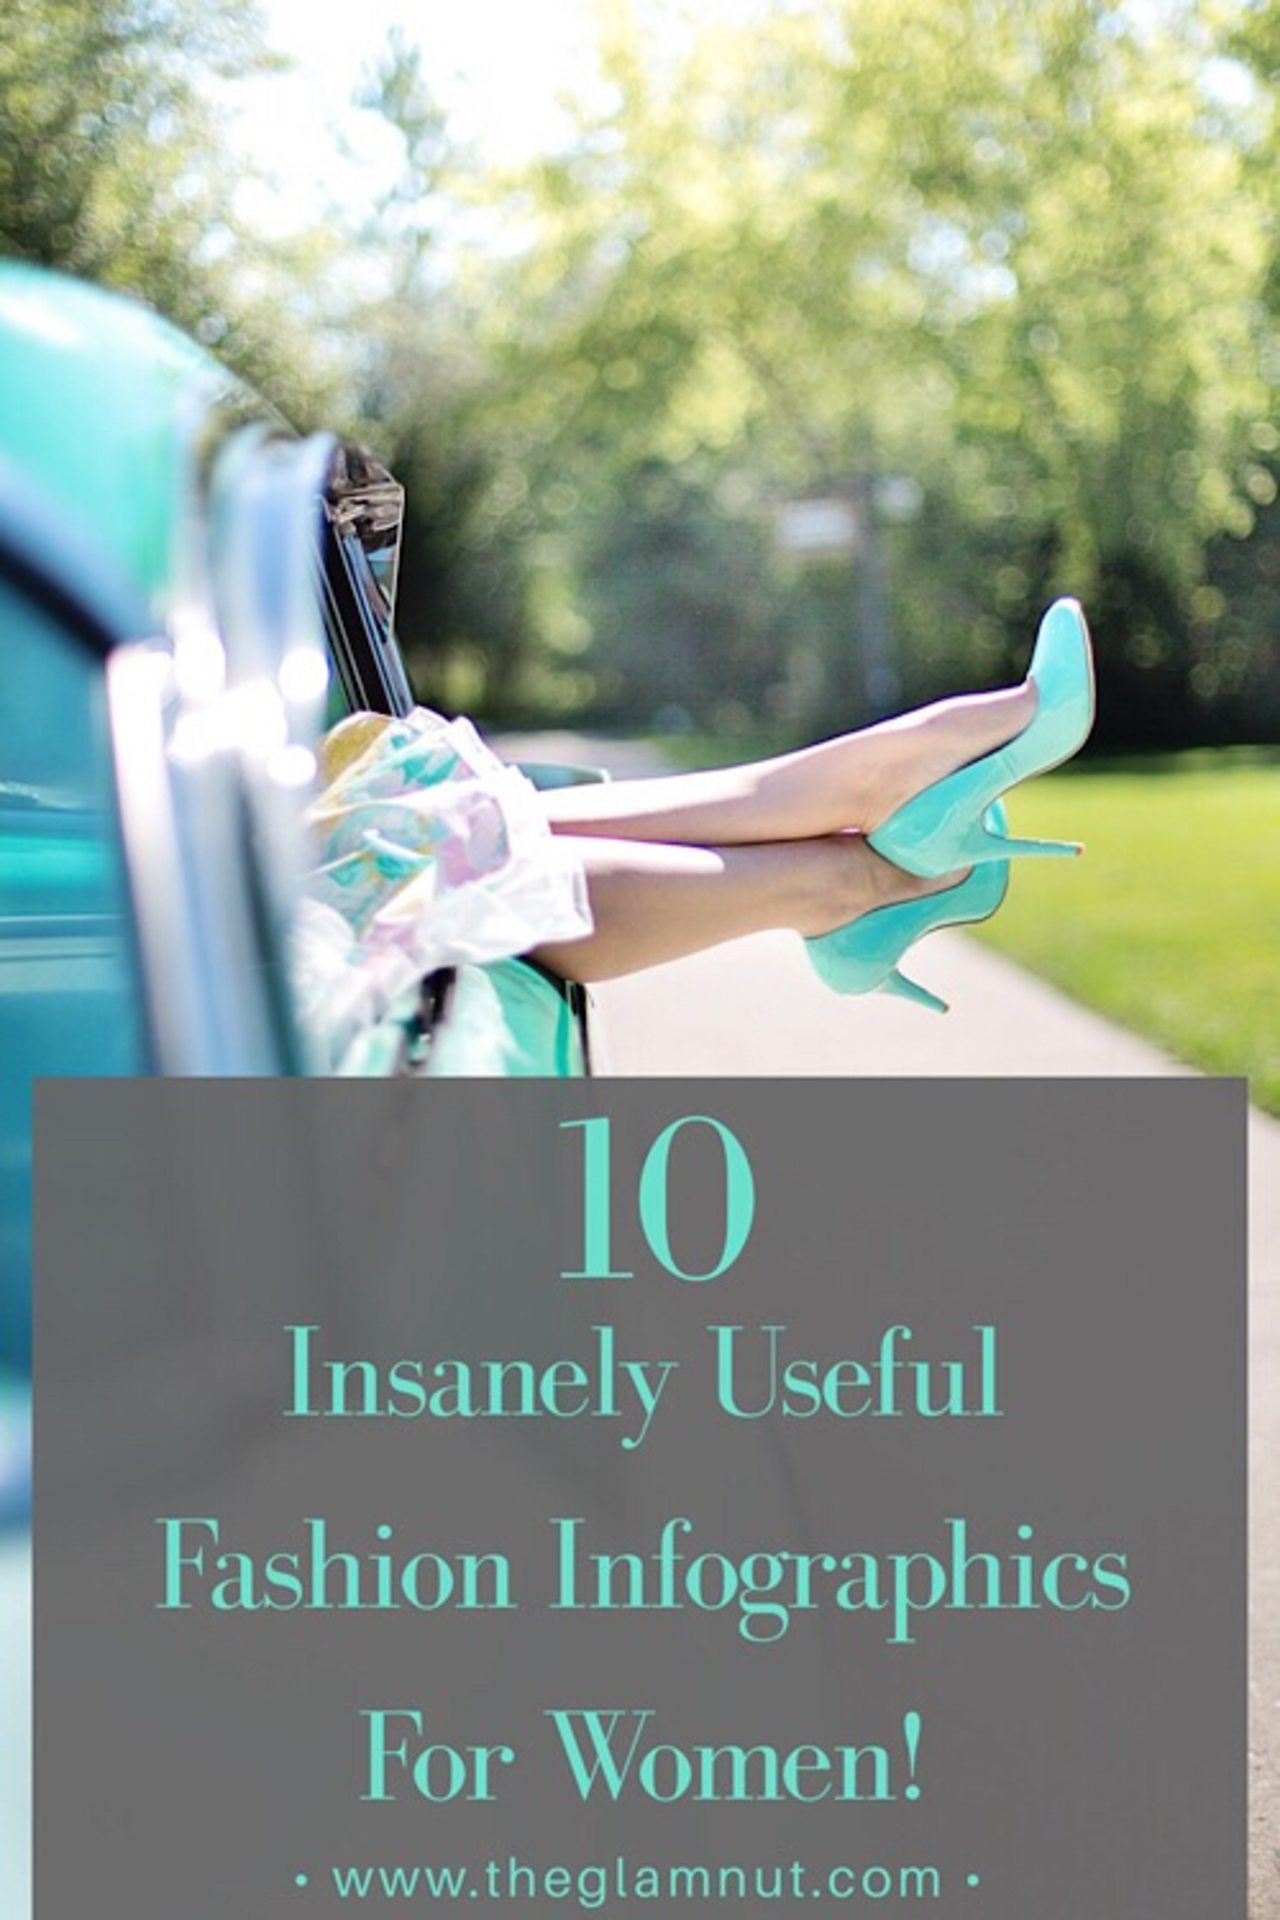 10 Insanely Useful Fashion Infographics For Women! image